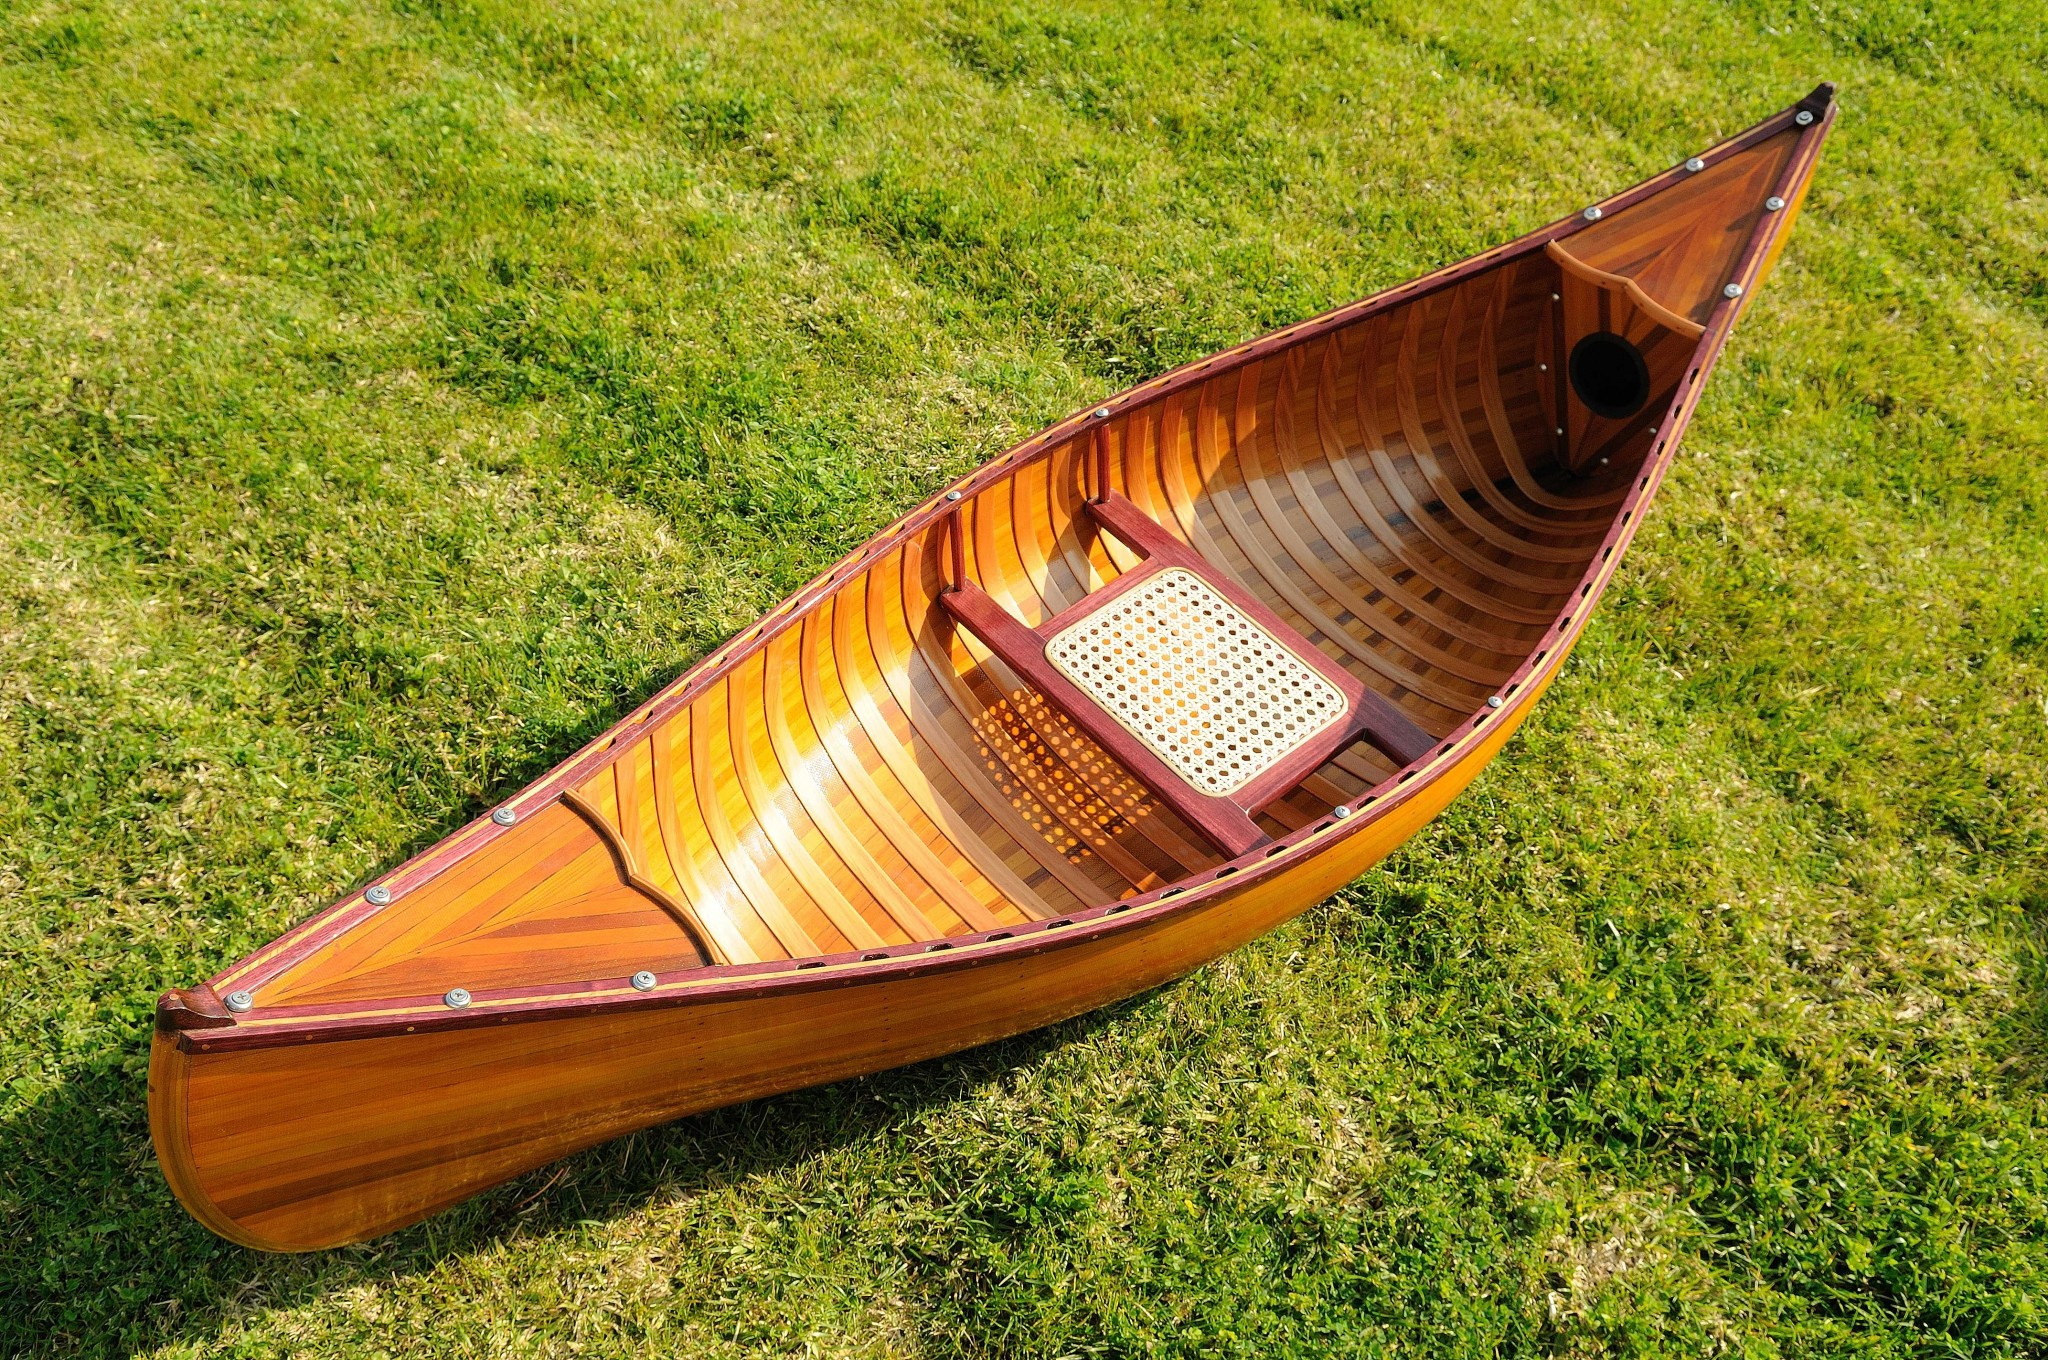 "20.25"" x 70.5"" x 15"" Wooden Canoe with Ribs"